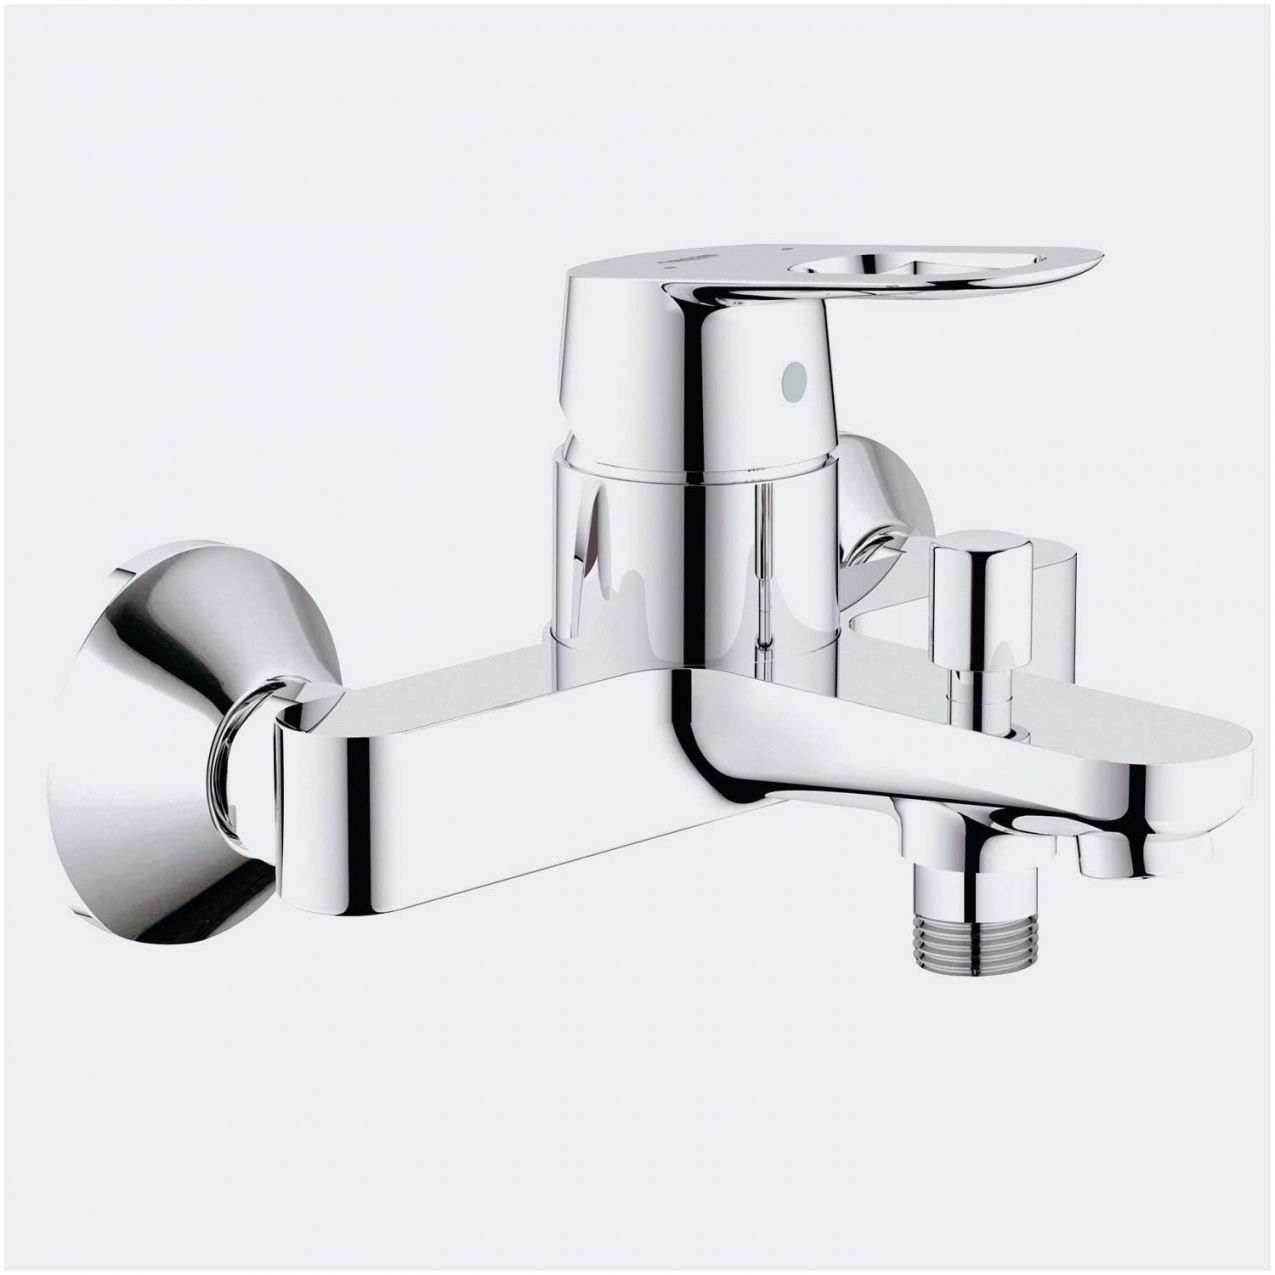 99 Robinet Lave Main Leroy Merlin 2018 Bath Shower Mixer Taps